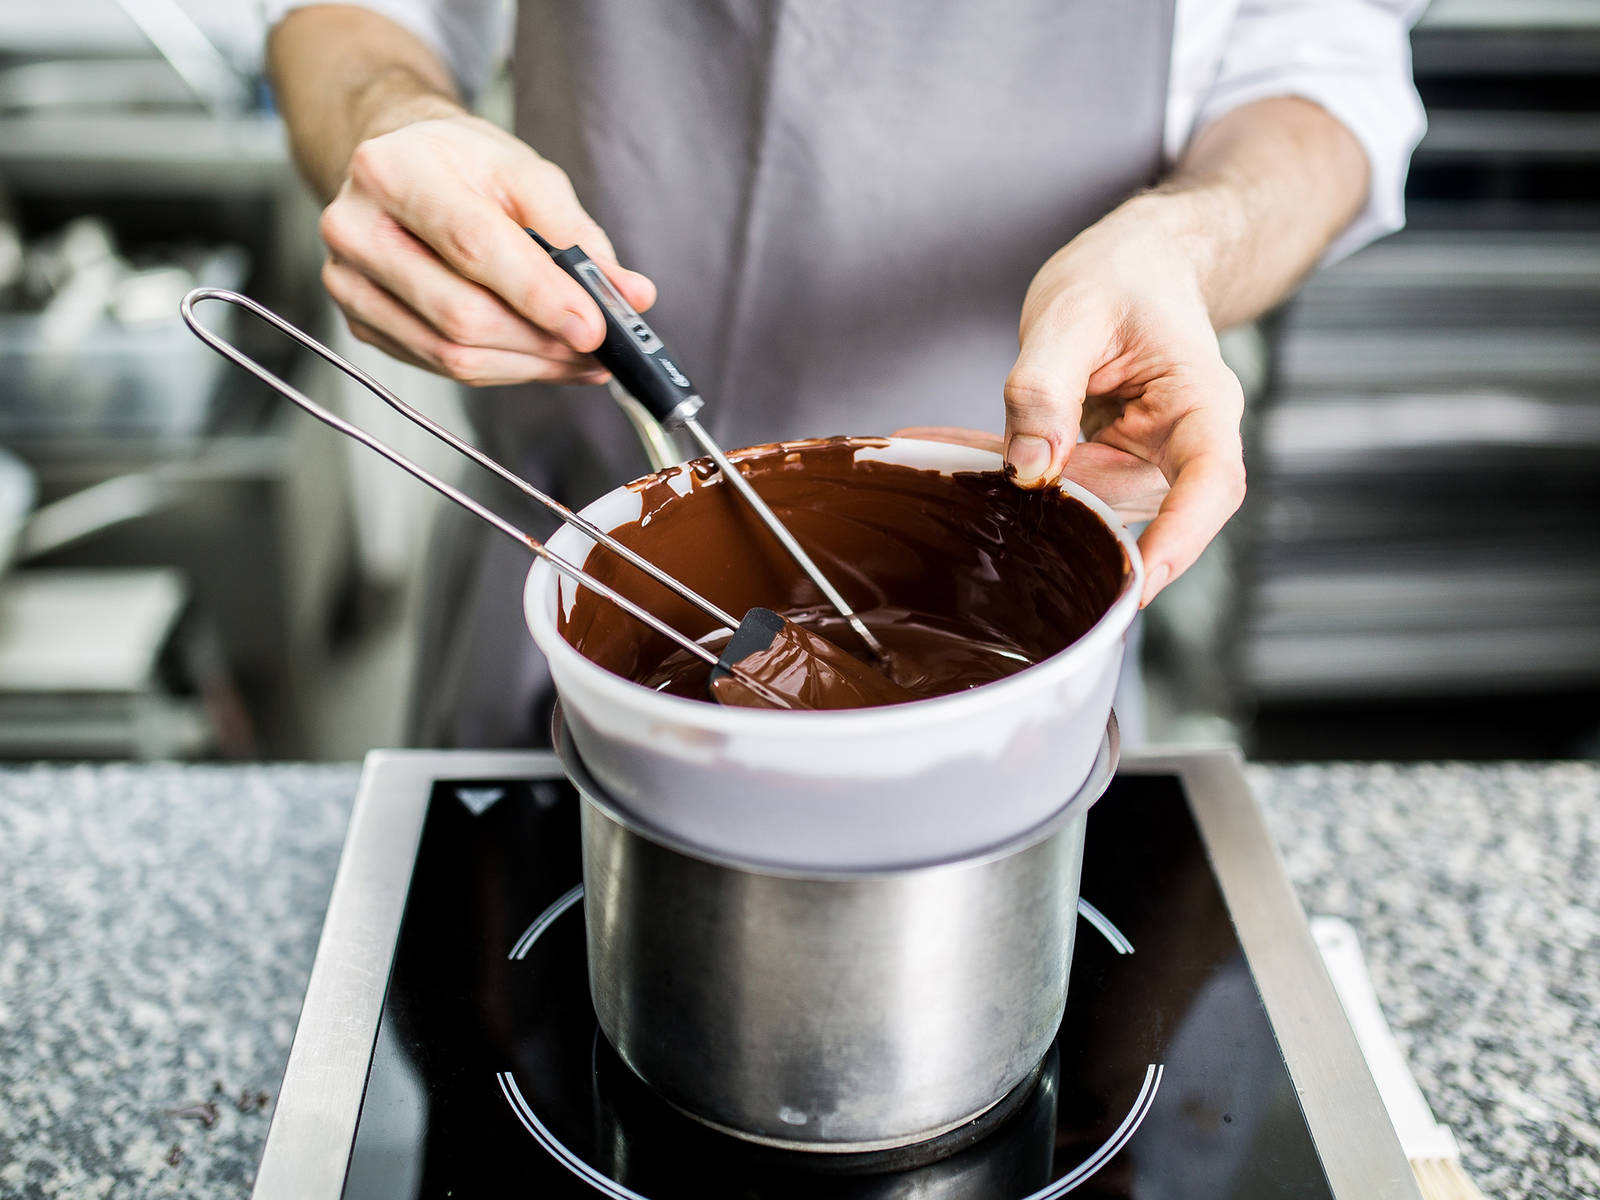 Set up a double-boiler by placing a heatproof bowl over a small pot of simmering water. Place half of the chocolate in the heatproof bowl and melt. Take off heat once it has reached 50°C/122°F. Set aside. Add rest of chocolate and gently stir.